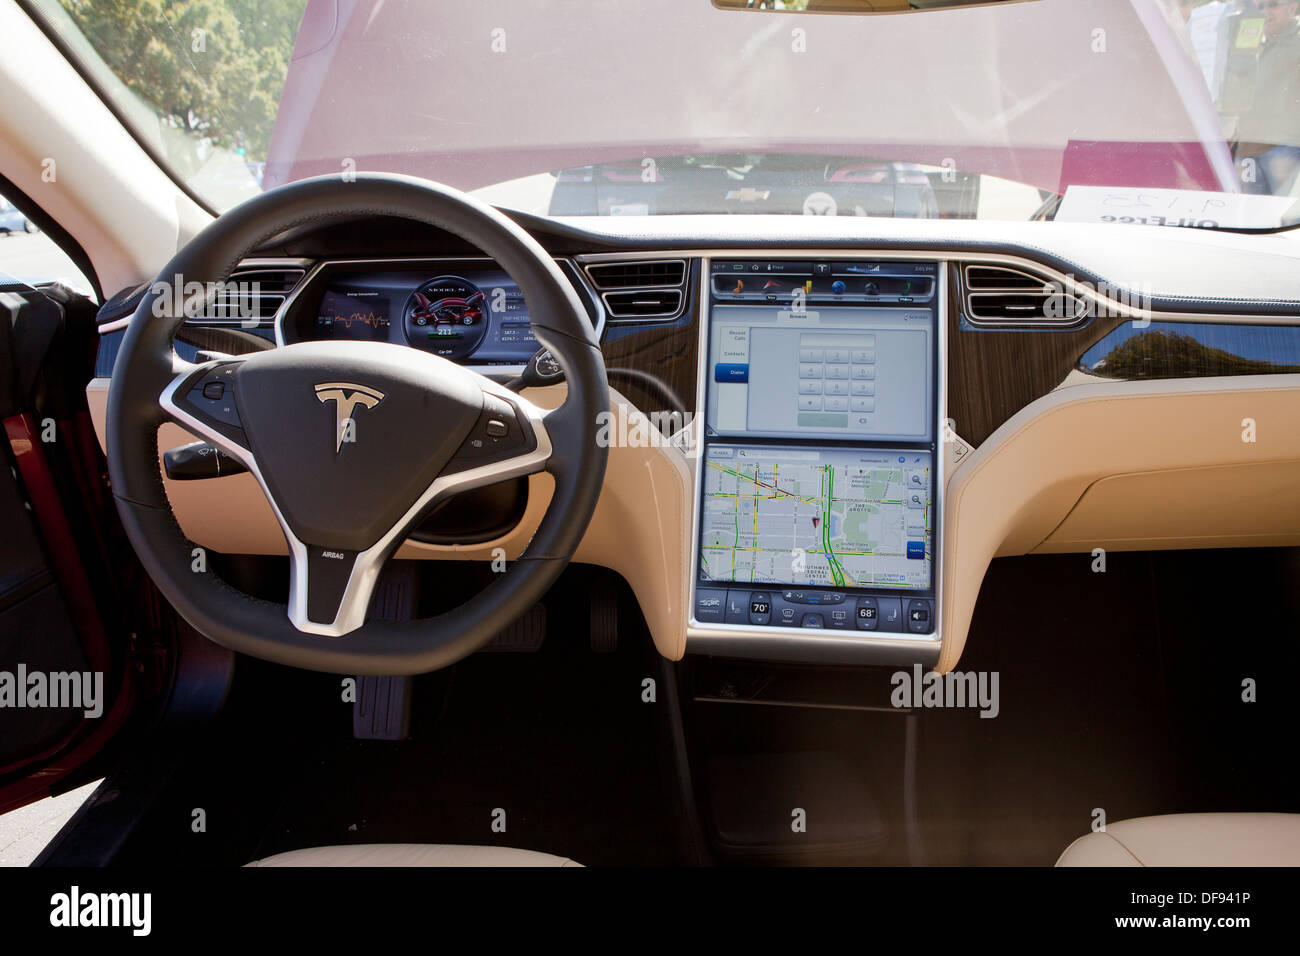 tesla electric car interior images galleries with a bite. Black Bedroom Furniture Sets. Home Design Ideas